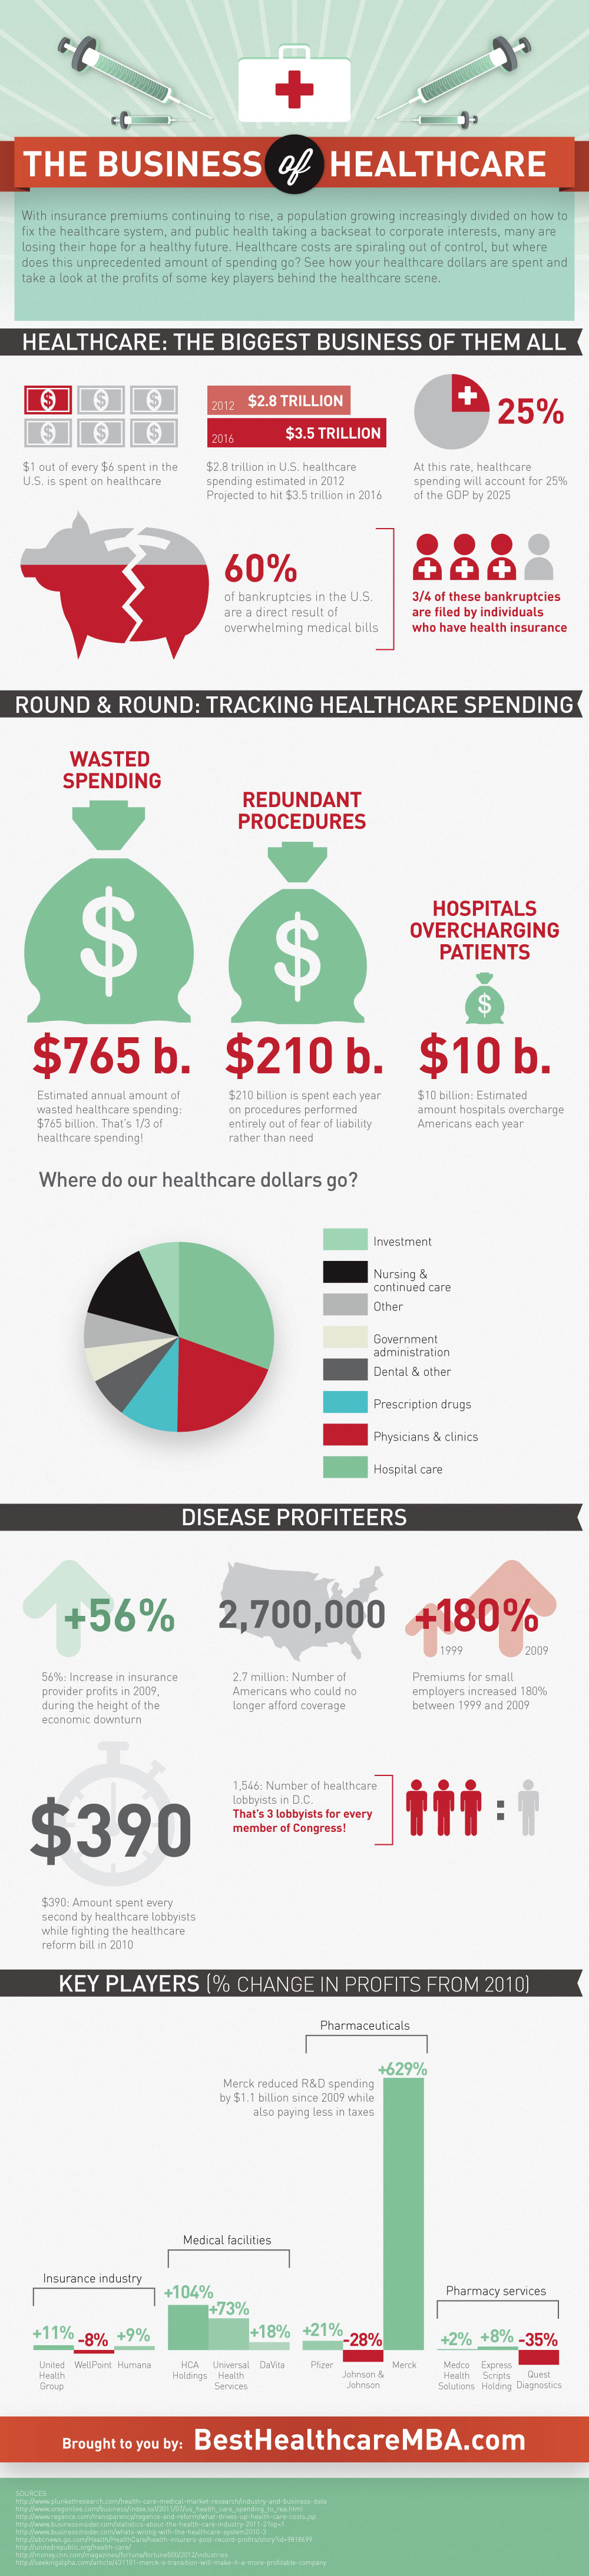 The Business of Healthcare [infographic]